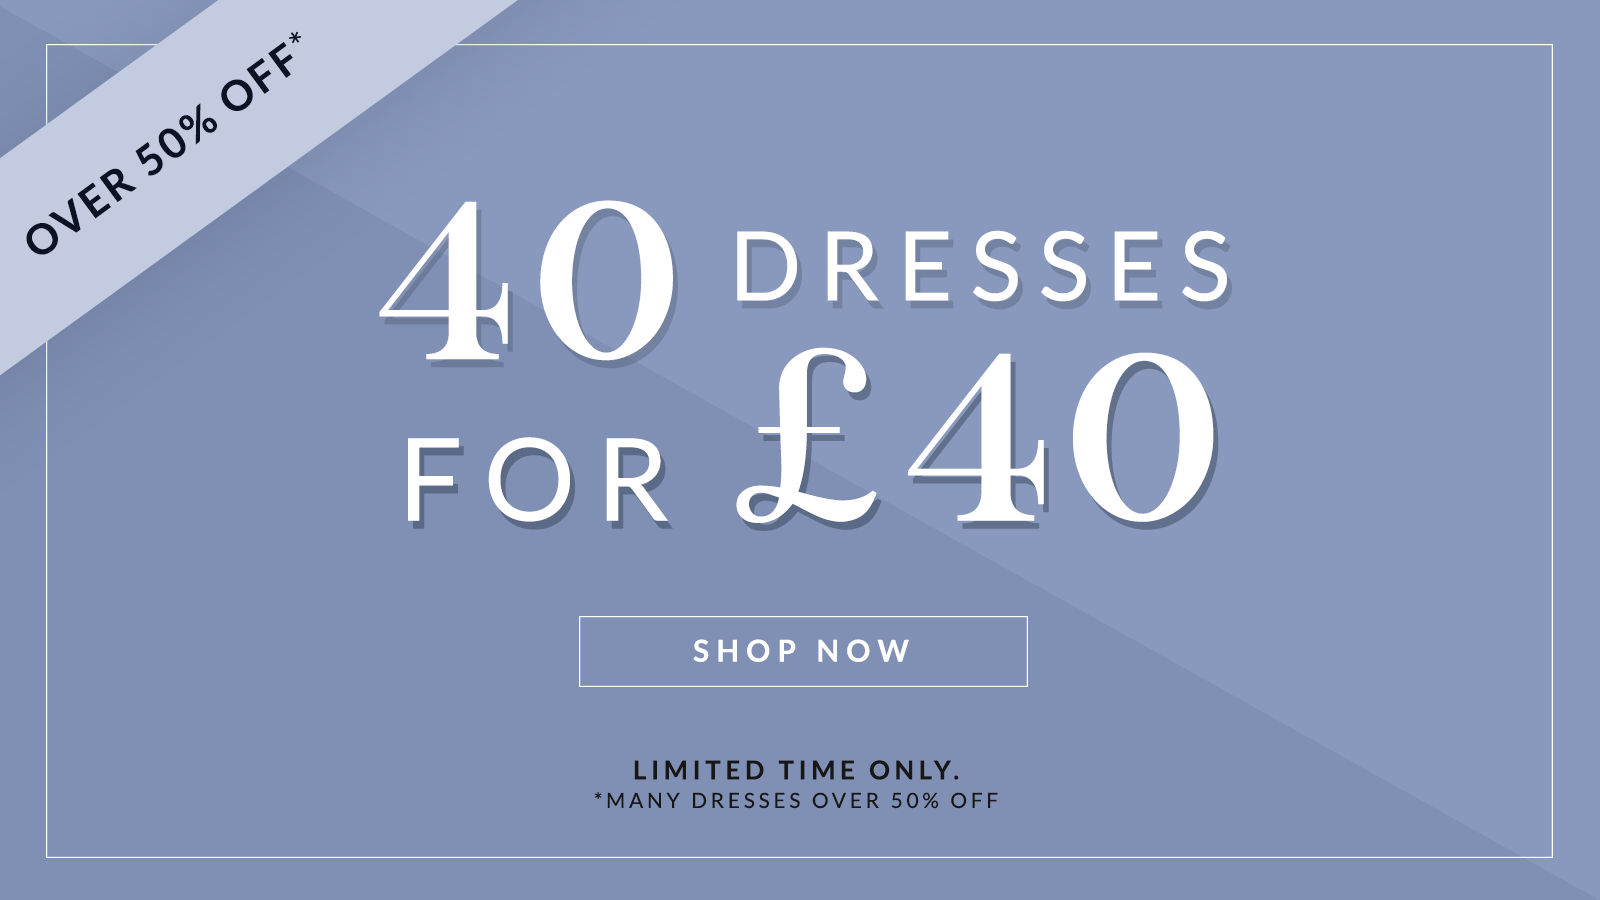 Chi Chi Chi Chi: 40 dresses for £40, many dresses over 50% off